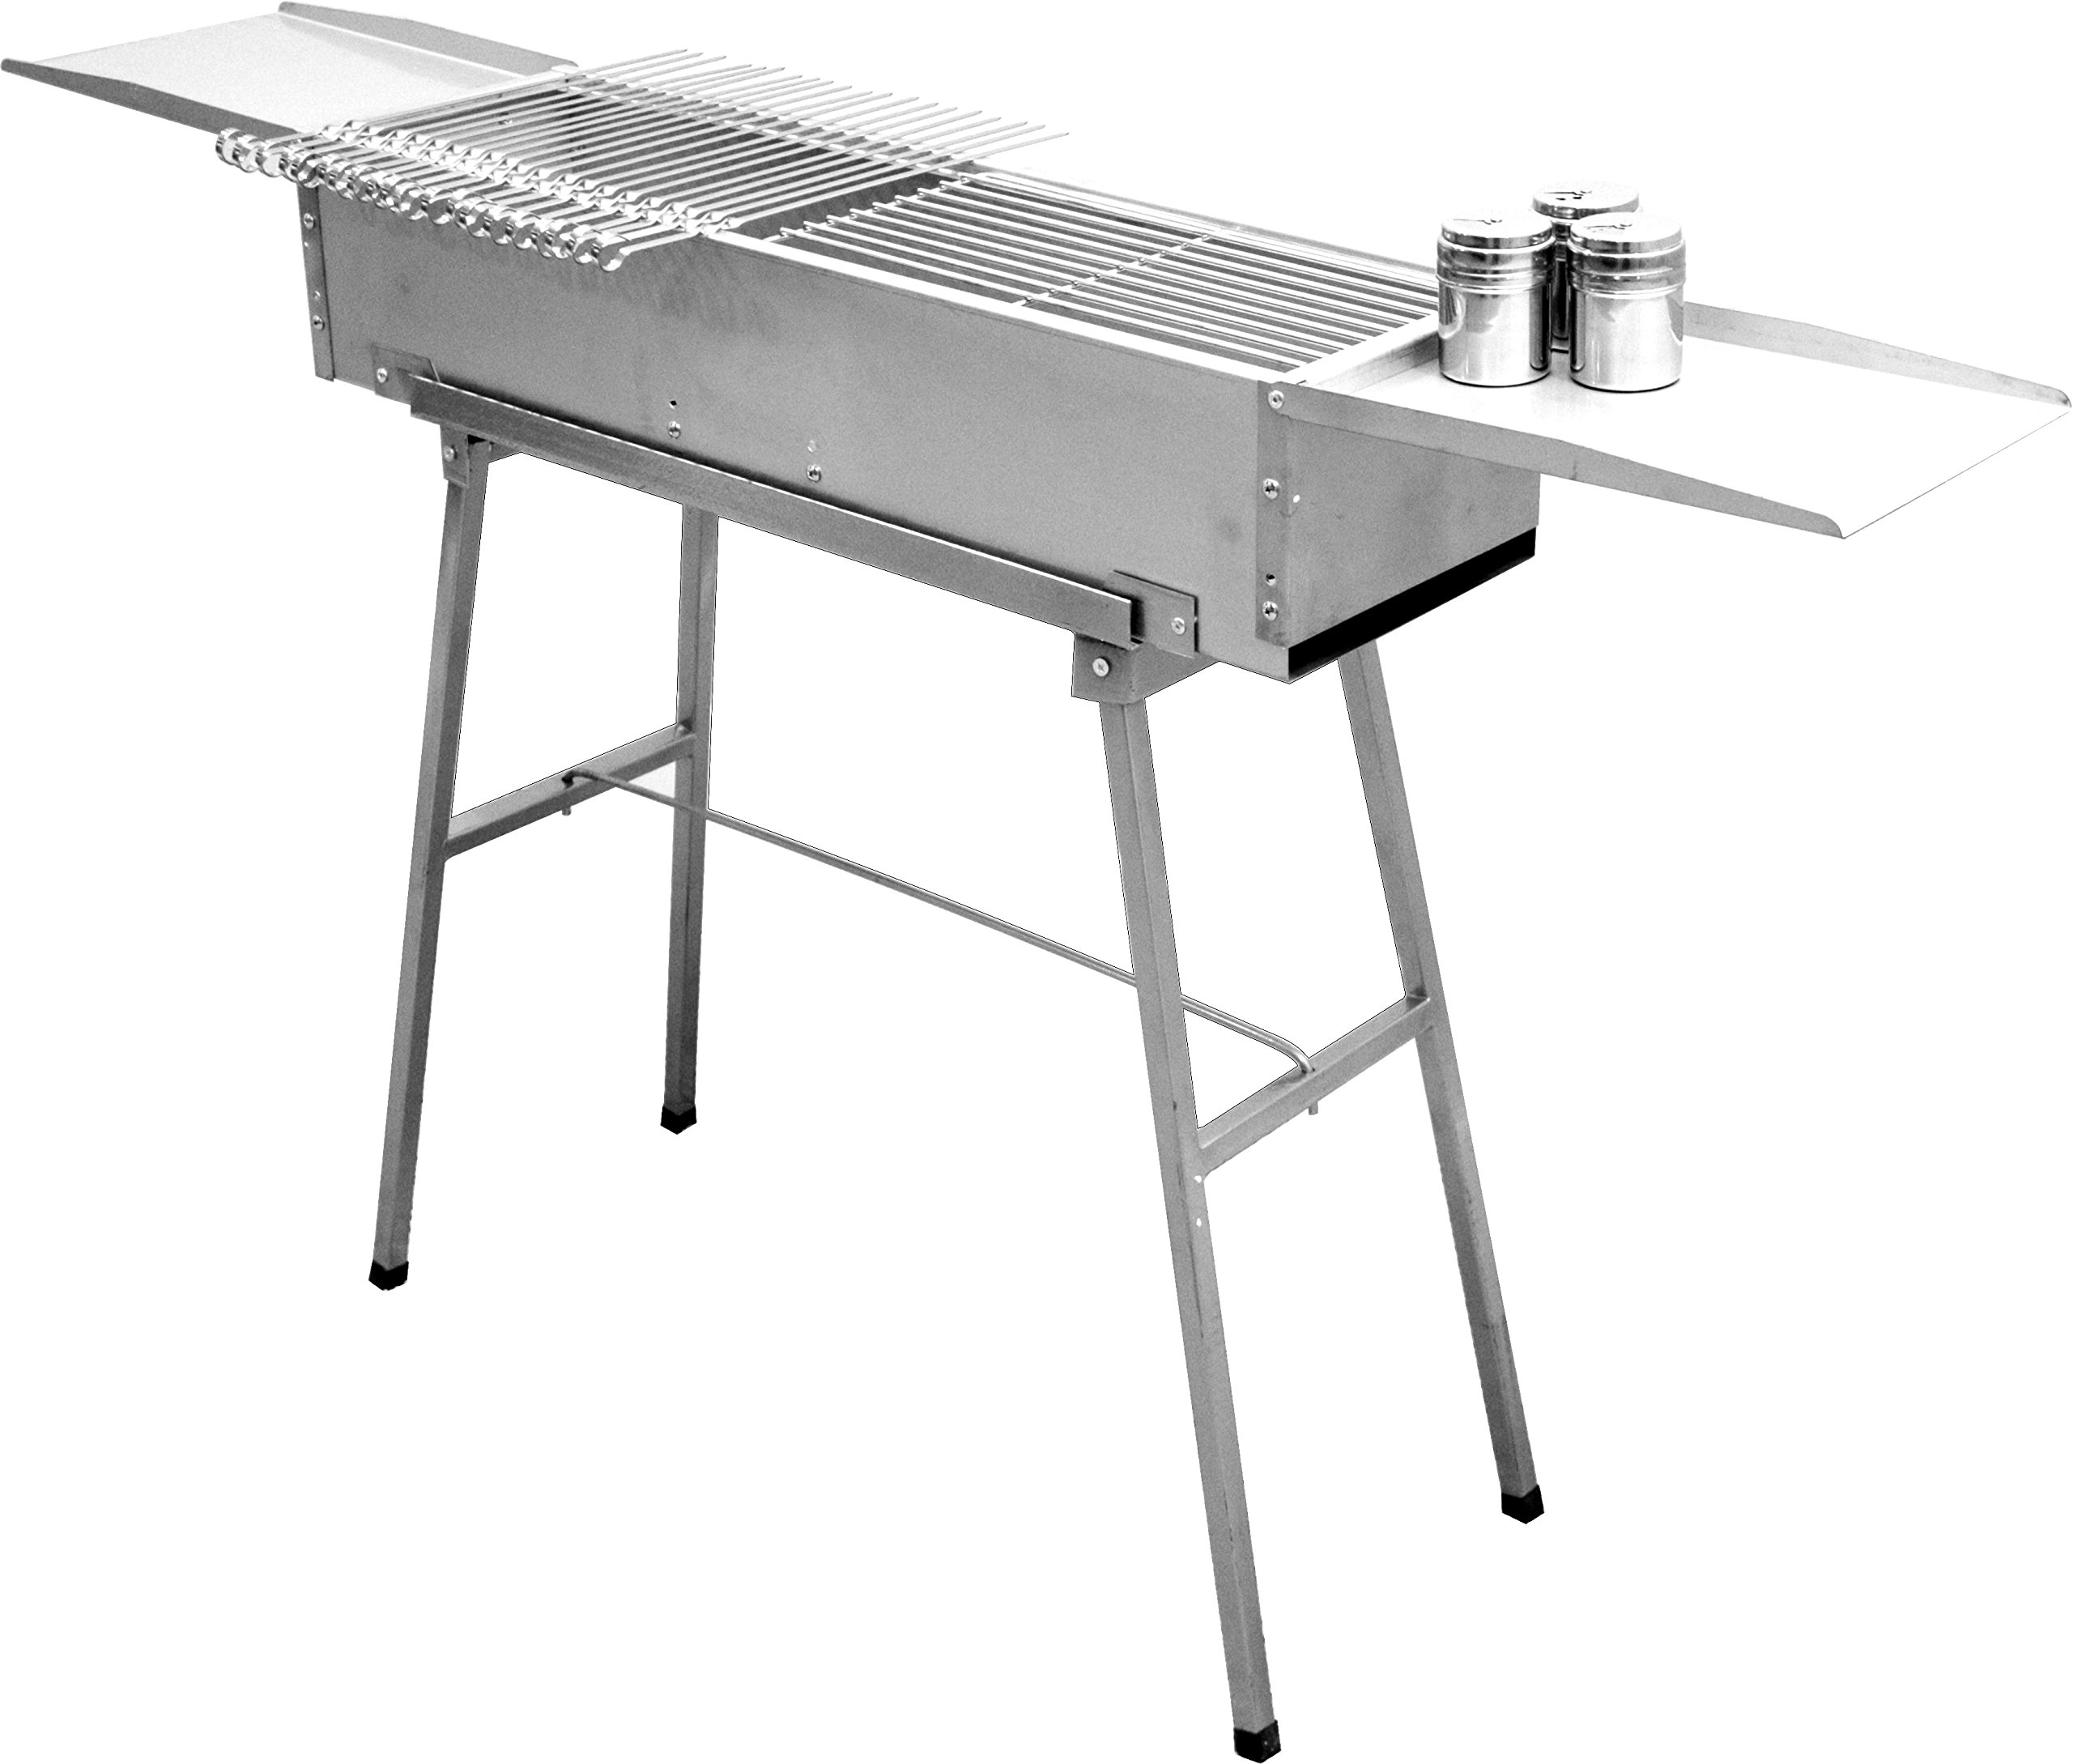 32'' deluxe stainless charcoal kebab grill – 9 inch wide with 20 stainless skewers